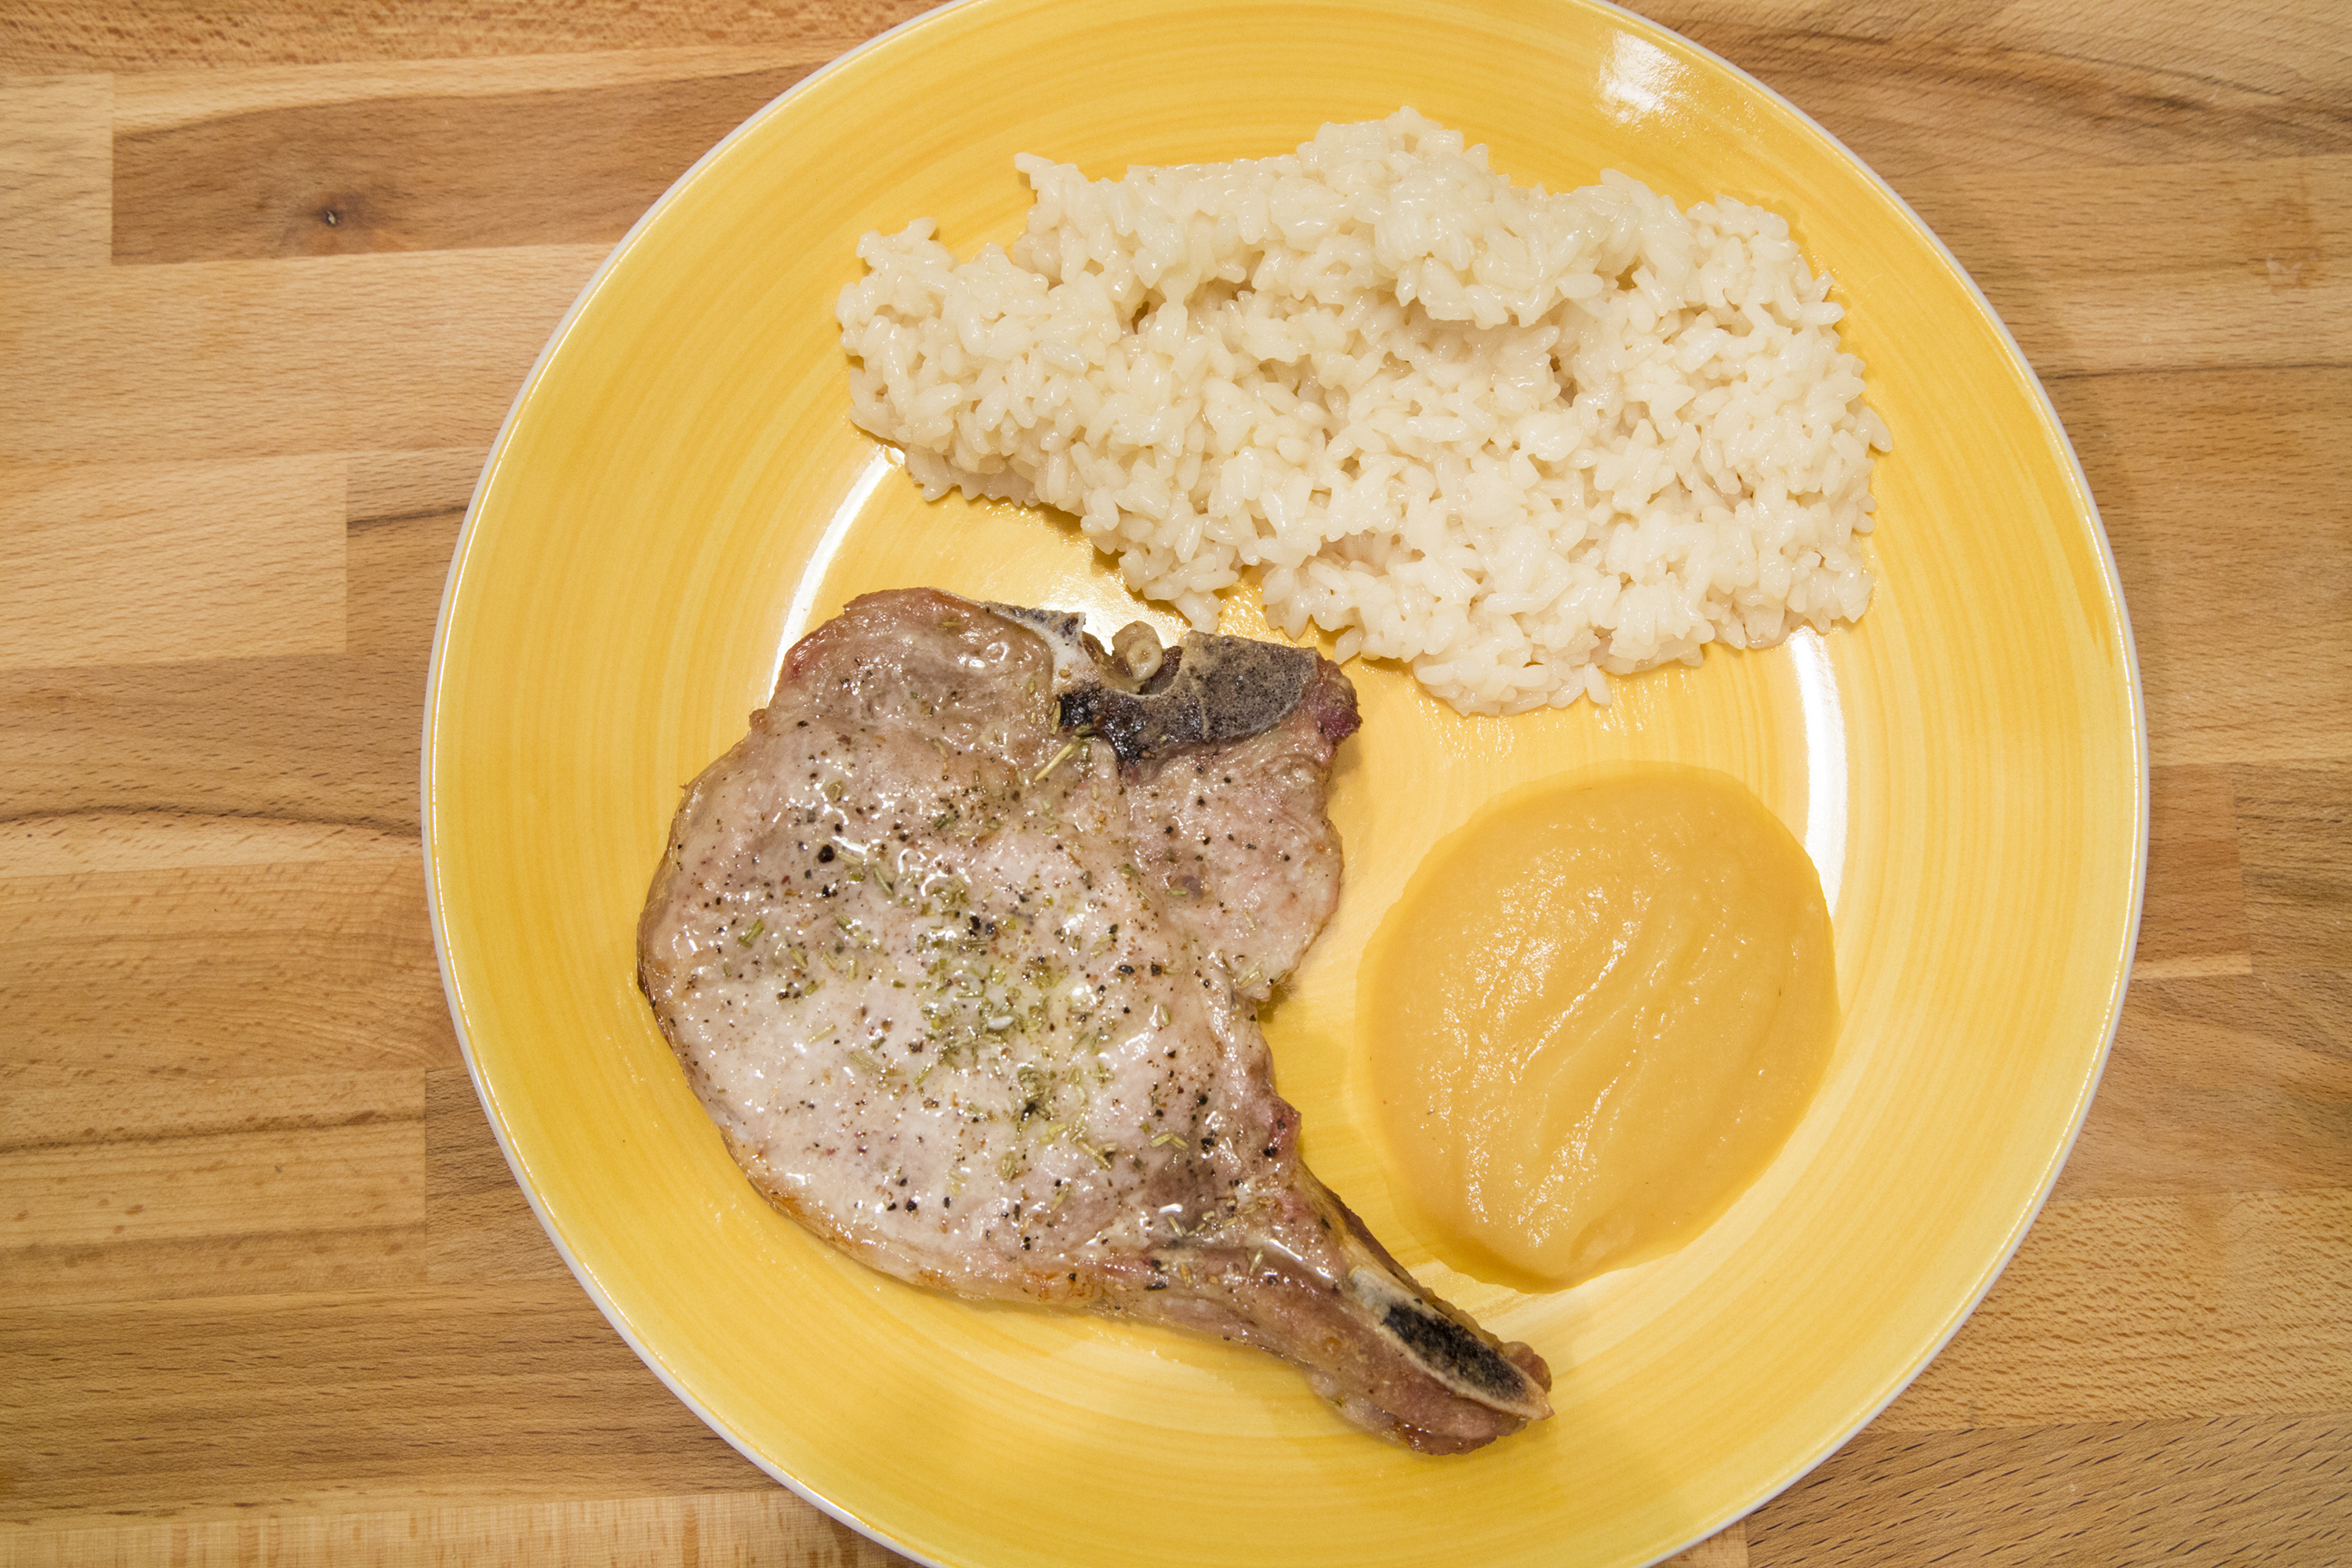 recipe: broil pork tenderloin in oven [36]